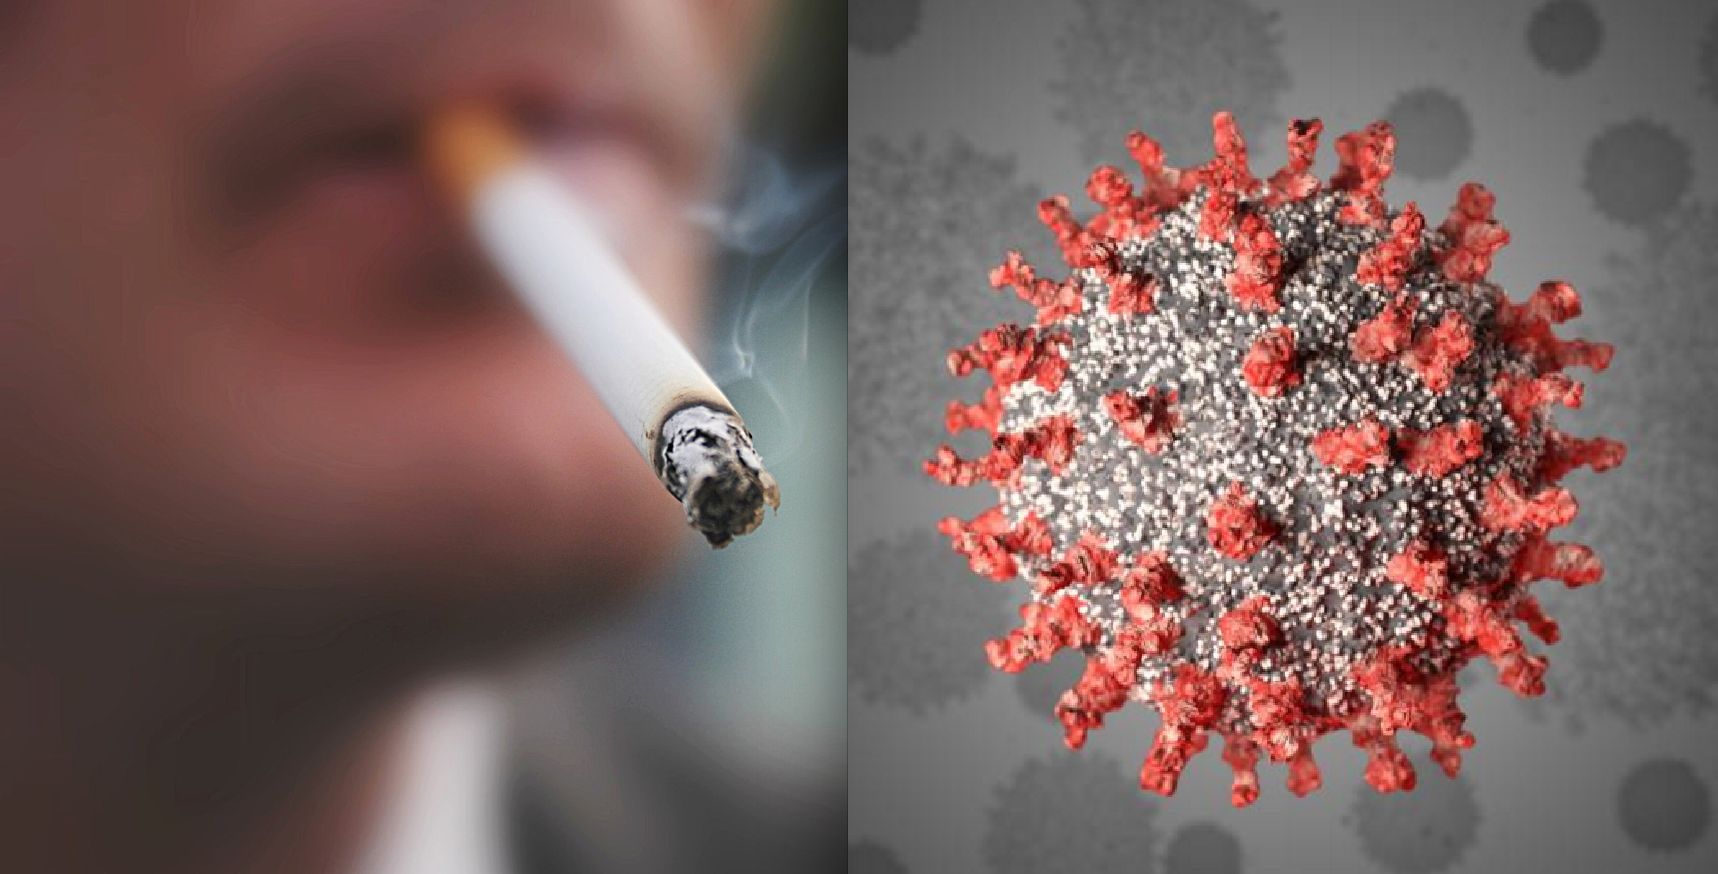 Tobacco Smokers Less Likely to be Hospitalized for COVID-19, Data Suggests — Go Figure